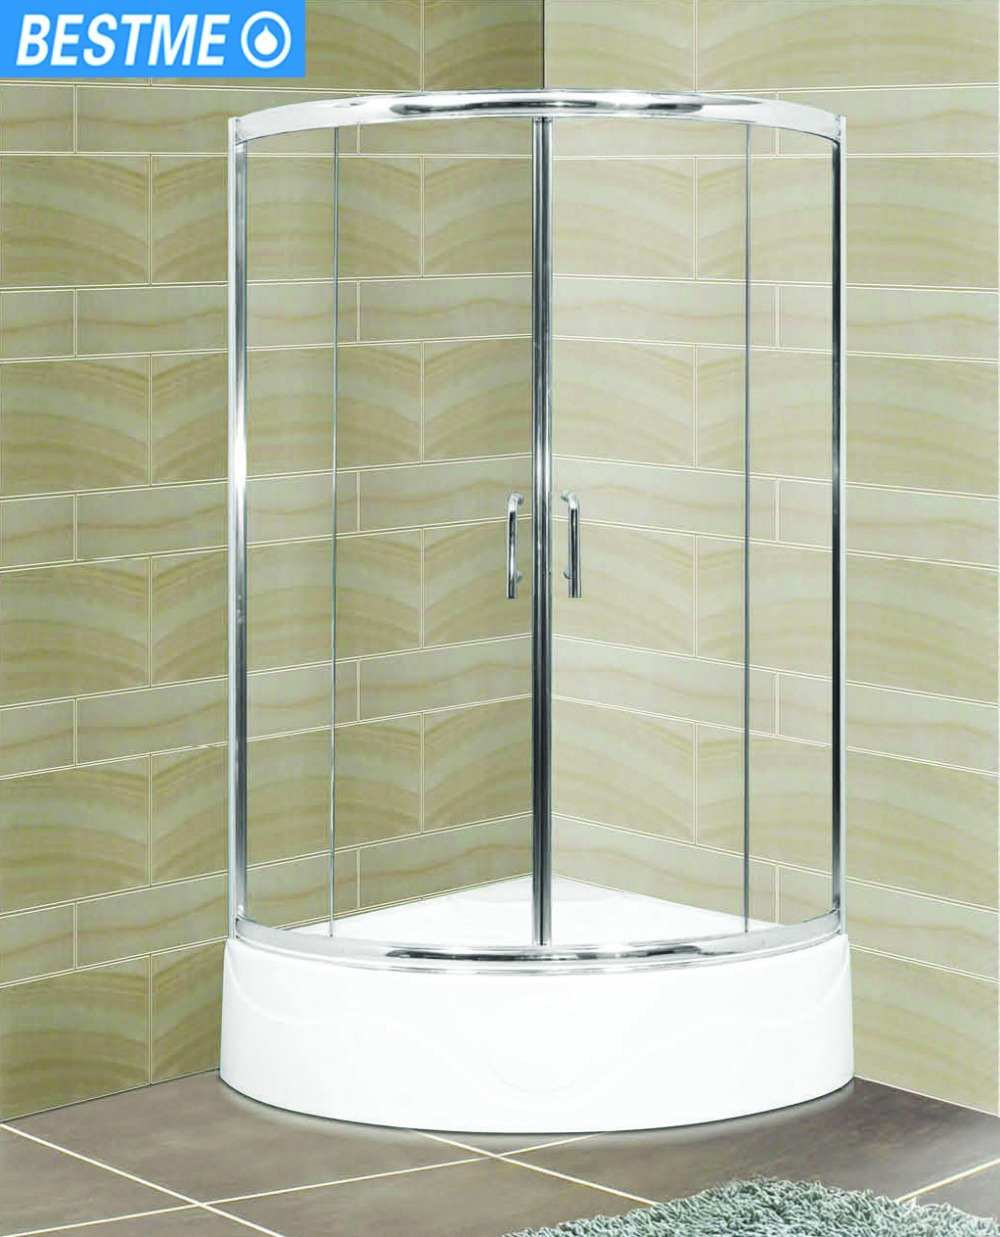 Acrylic Shower Doors, Acrylic Shower Doors Suppliers and ...